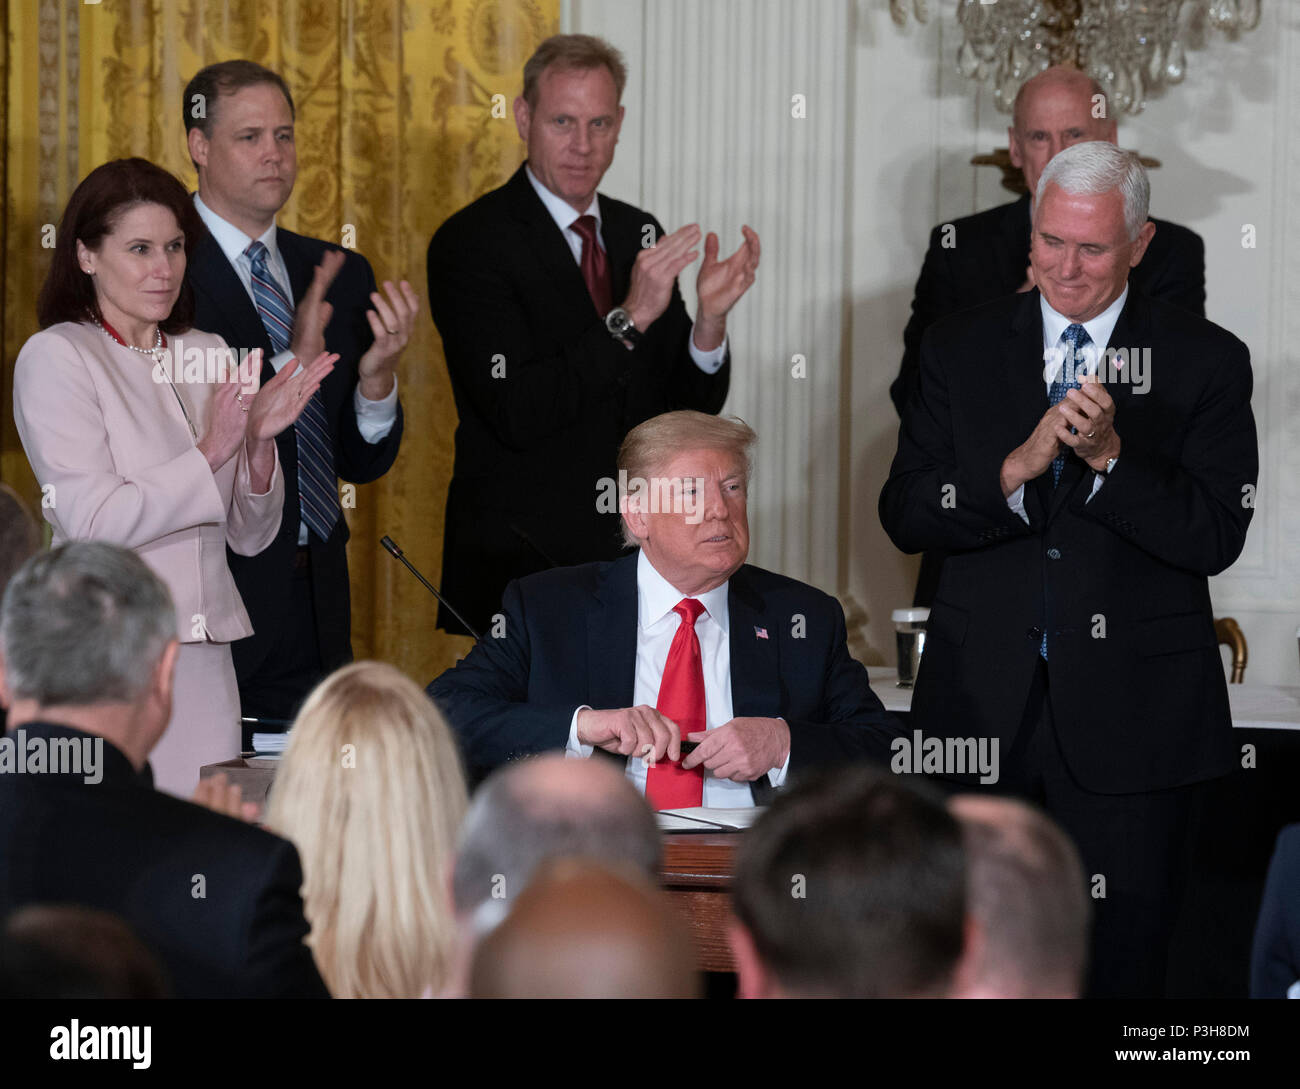 United States President Donald J. Trump signs Space Policy Directive 3 during a meeting of the National Space Council at The White House in Washington, DC, June 18, 2018. The directive addresses issues including monitoring of objects in orbit, providing that information to spacecraft operators to avoid collisions, and to limit the growth of orbital debris. Chris Kleponis/CNP | usage worldwide - Stock Image